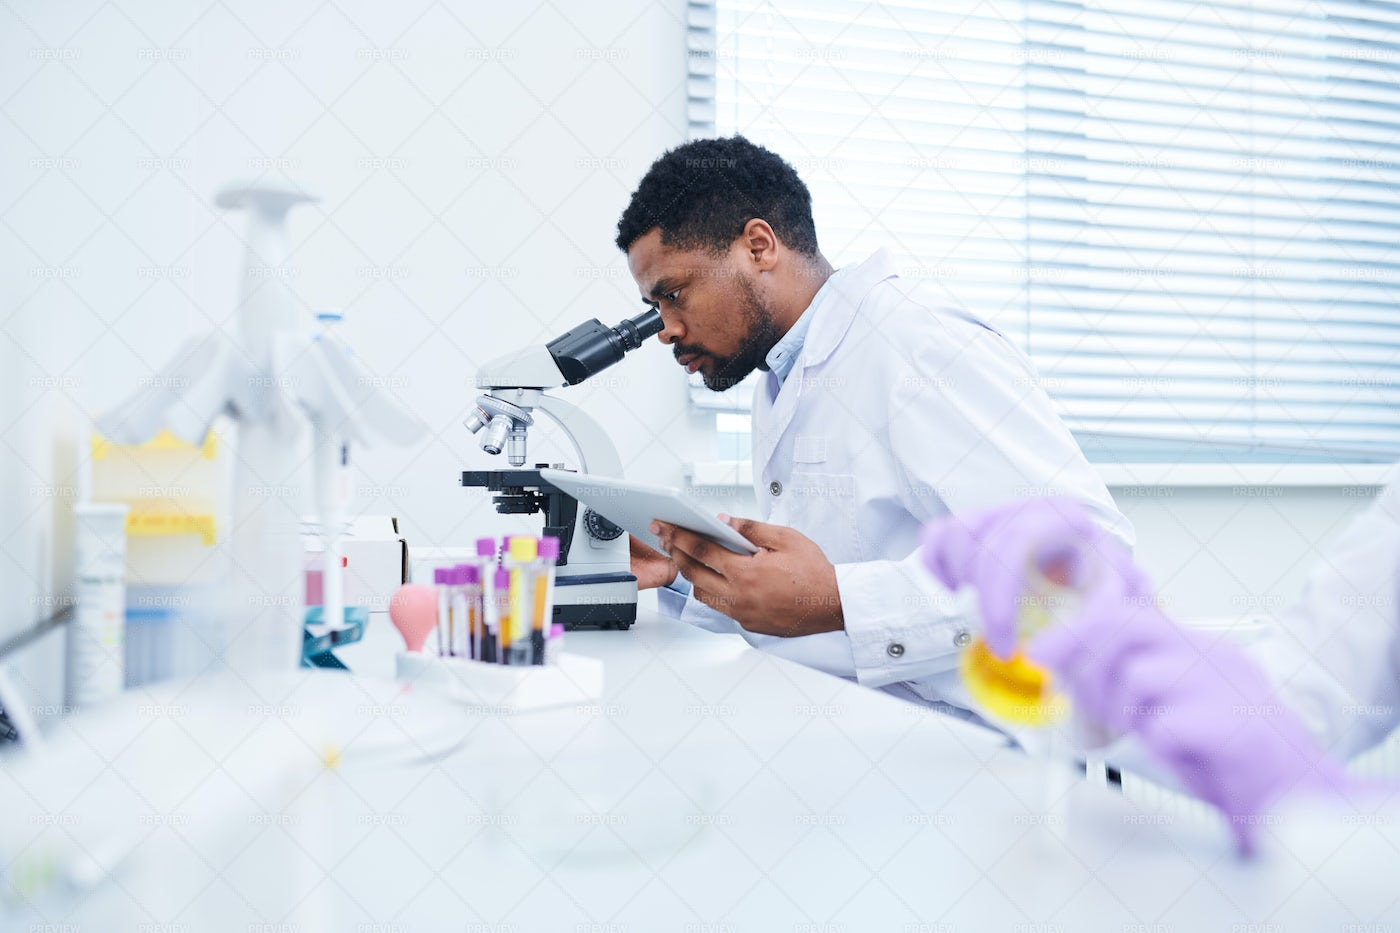 Concentrated Lab Technician Using...: Stock Photos